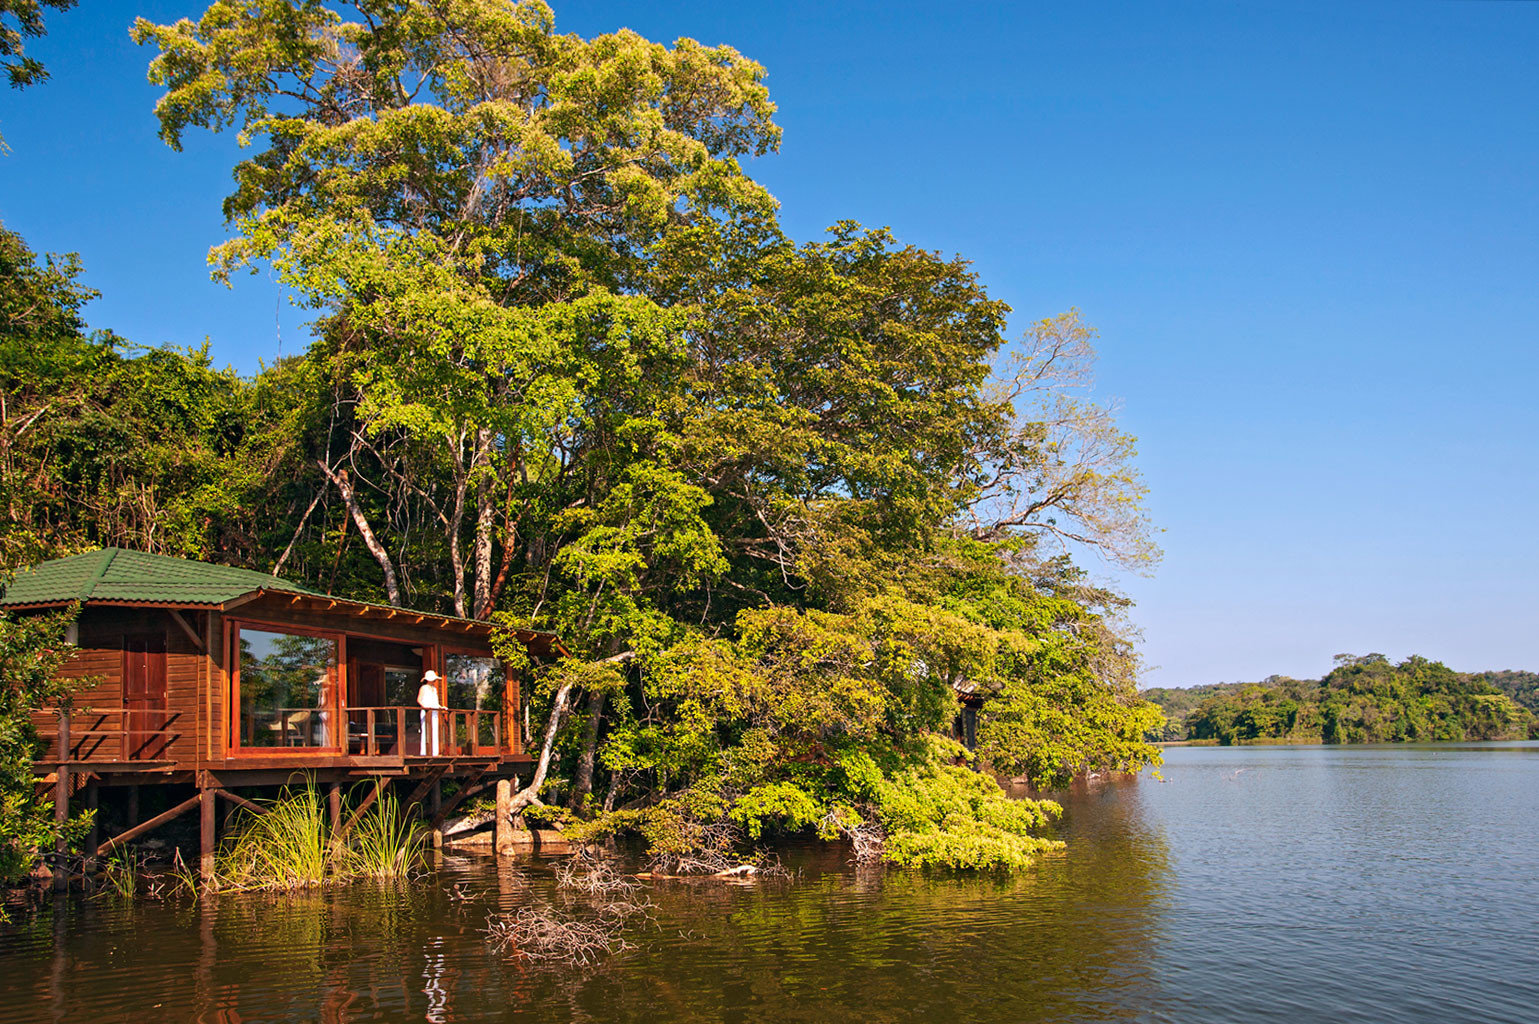 Luxury Outdoor Activities Overwater Bungalow Treehouse Waterfront tree water sky Boat River Nature Lake house plant season leaf woody plant autumn waterway pond rural area flower traveling surrounded